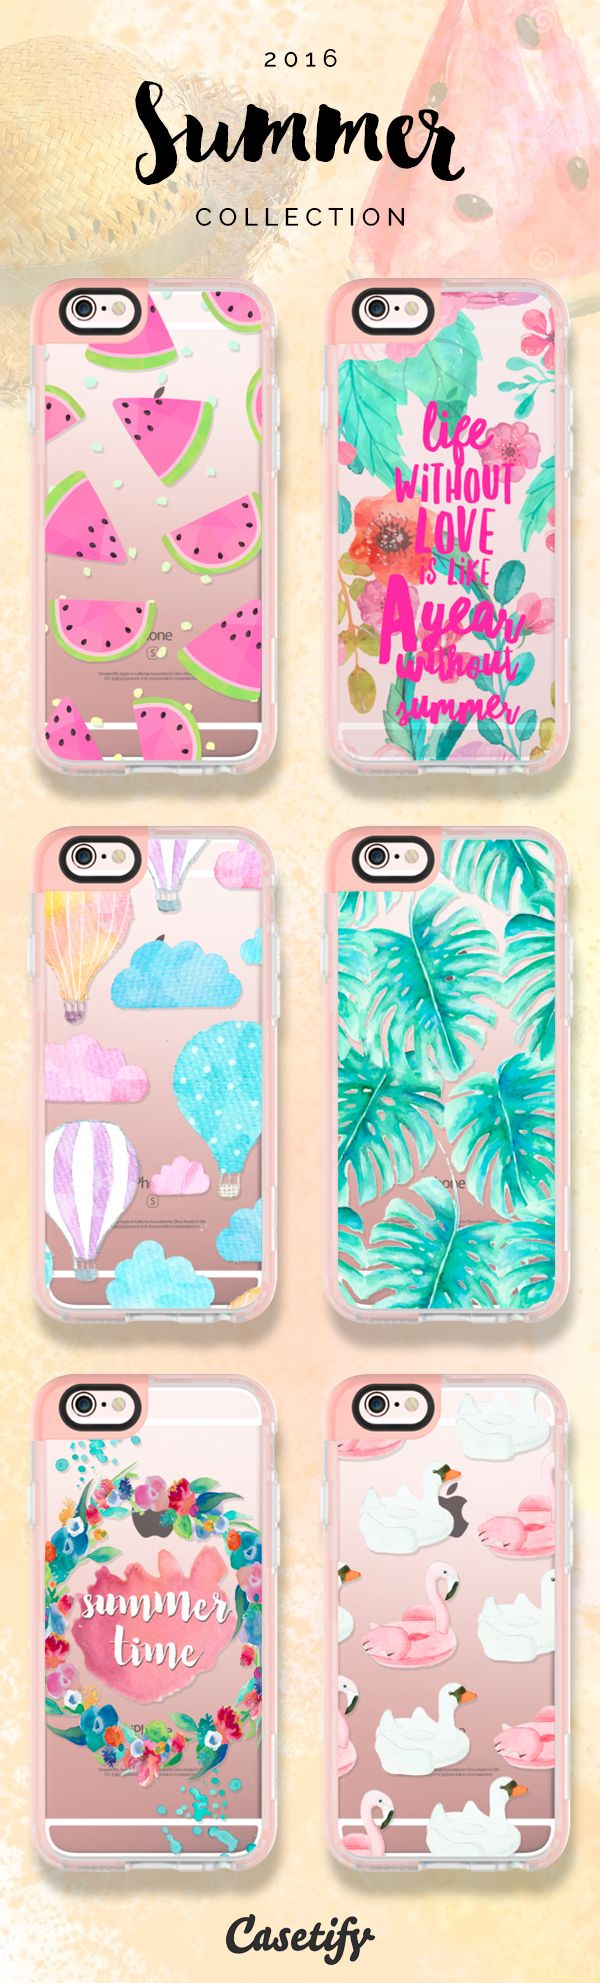 Let's have some fun in the sun! Click through to check out our latest 2016 #summer collection >>> https://www.casetify.com/collections/summer | @casetify http://amzn.to/2qZ3RzU